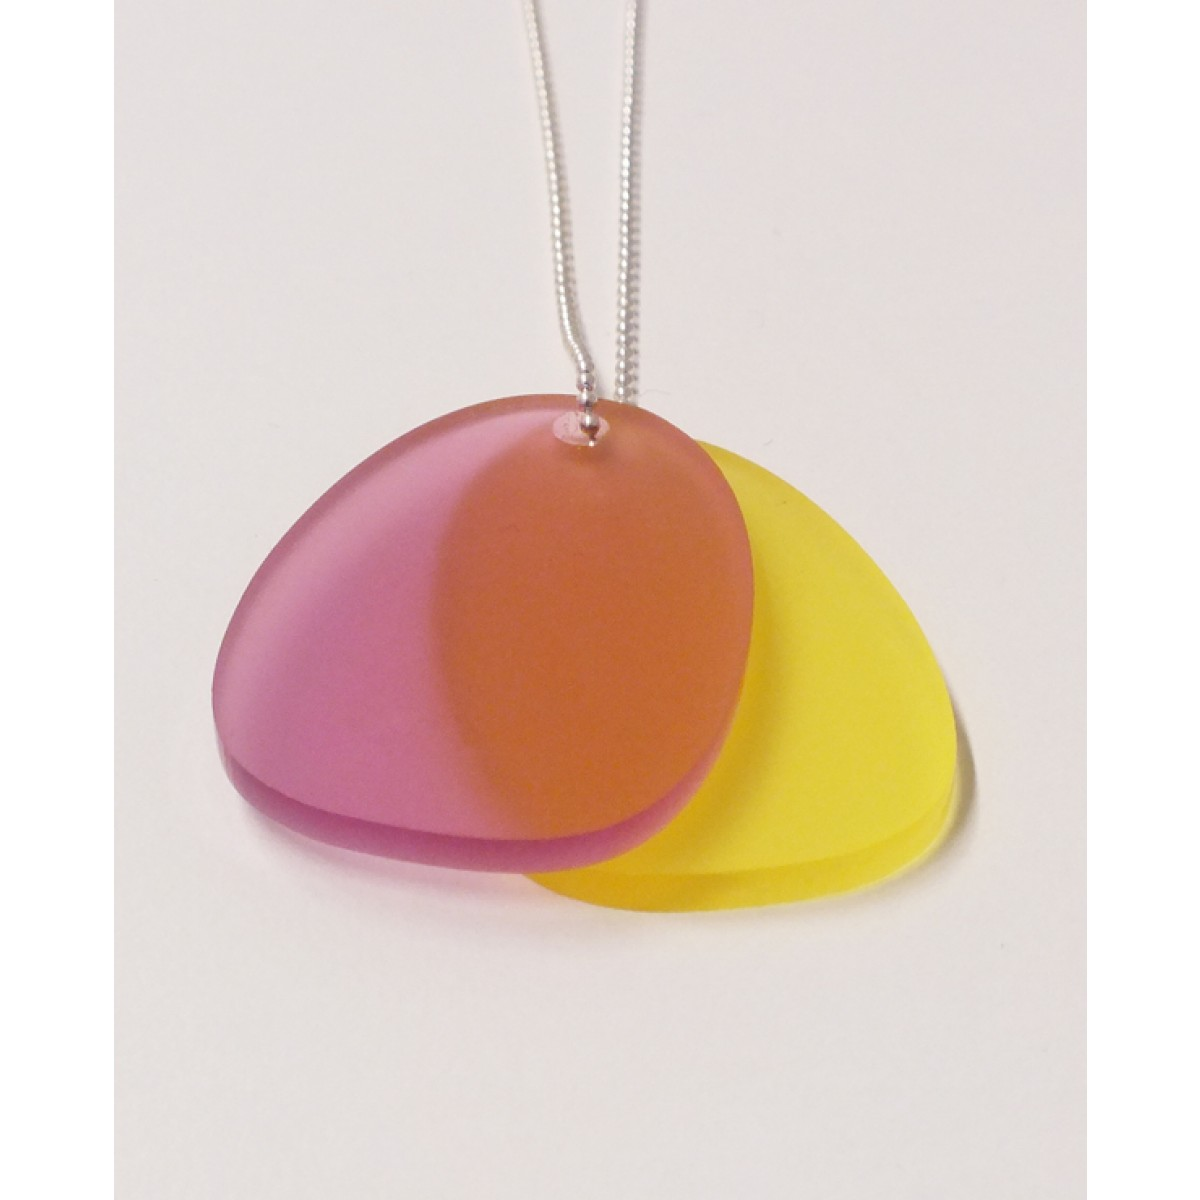 theobalt.design TAG necklace pink/yellow